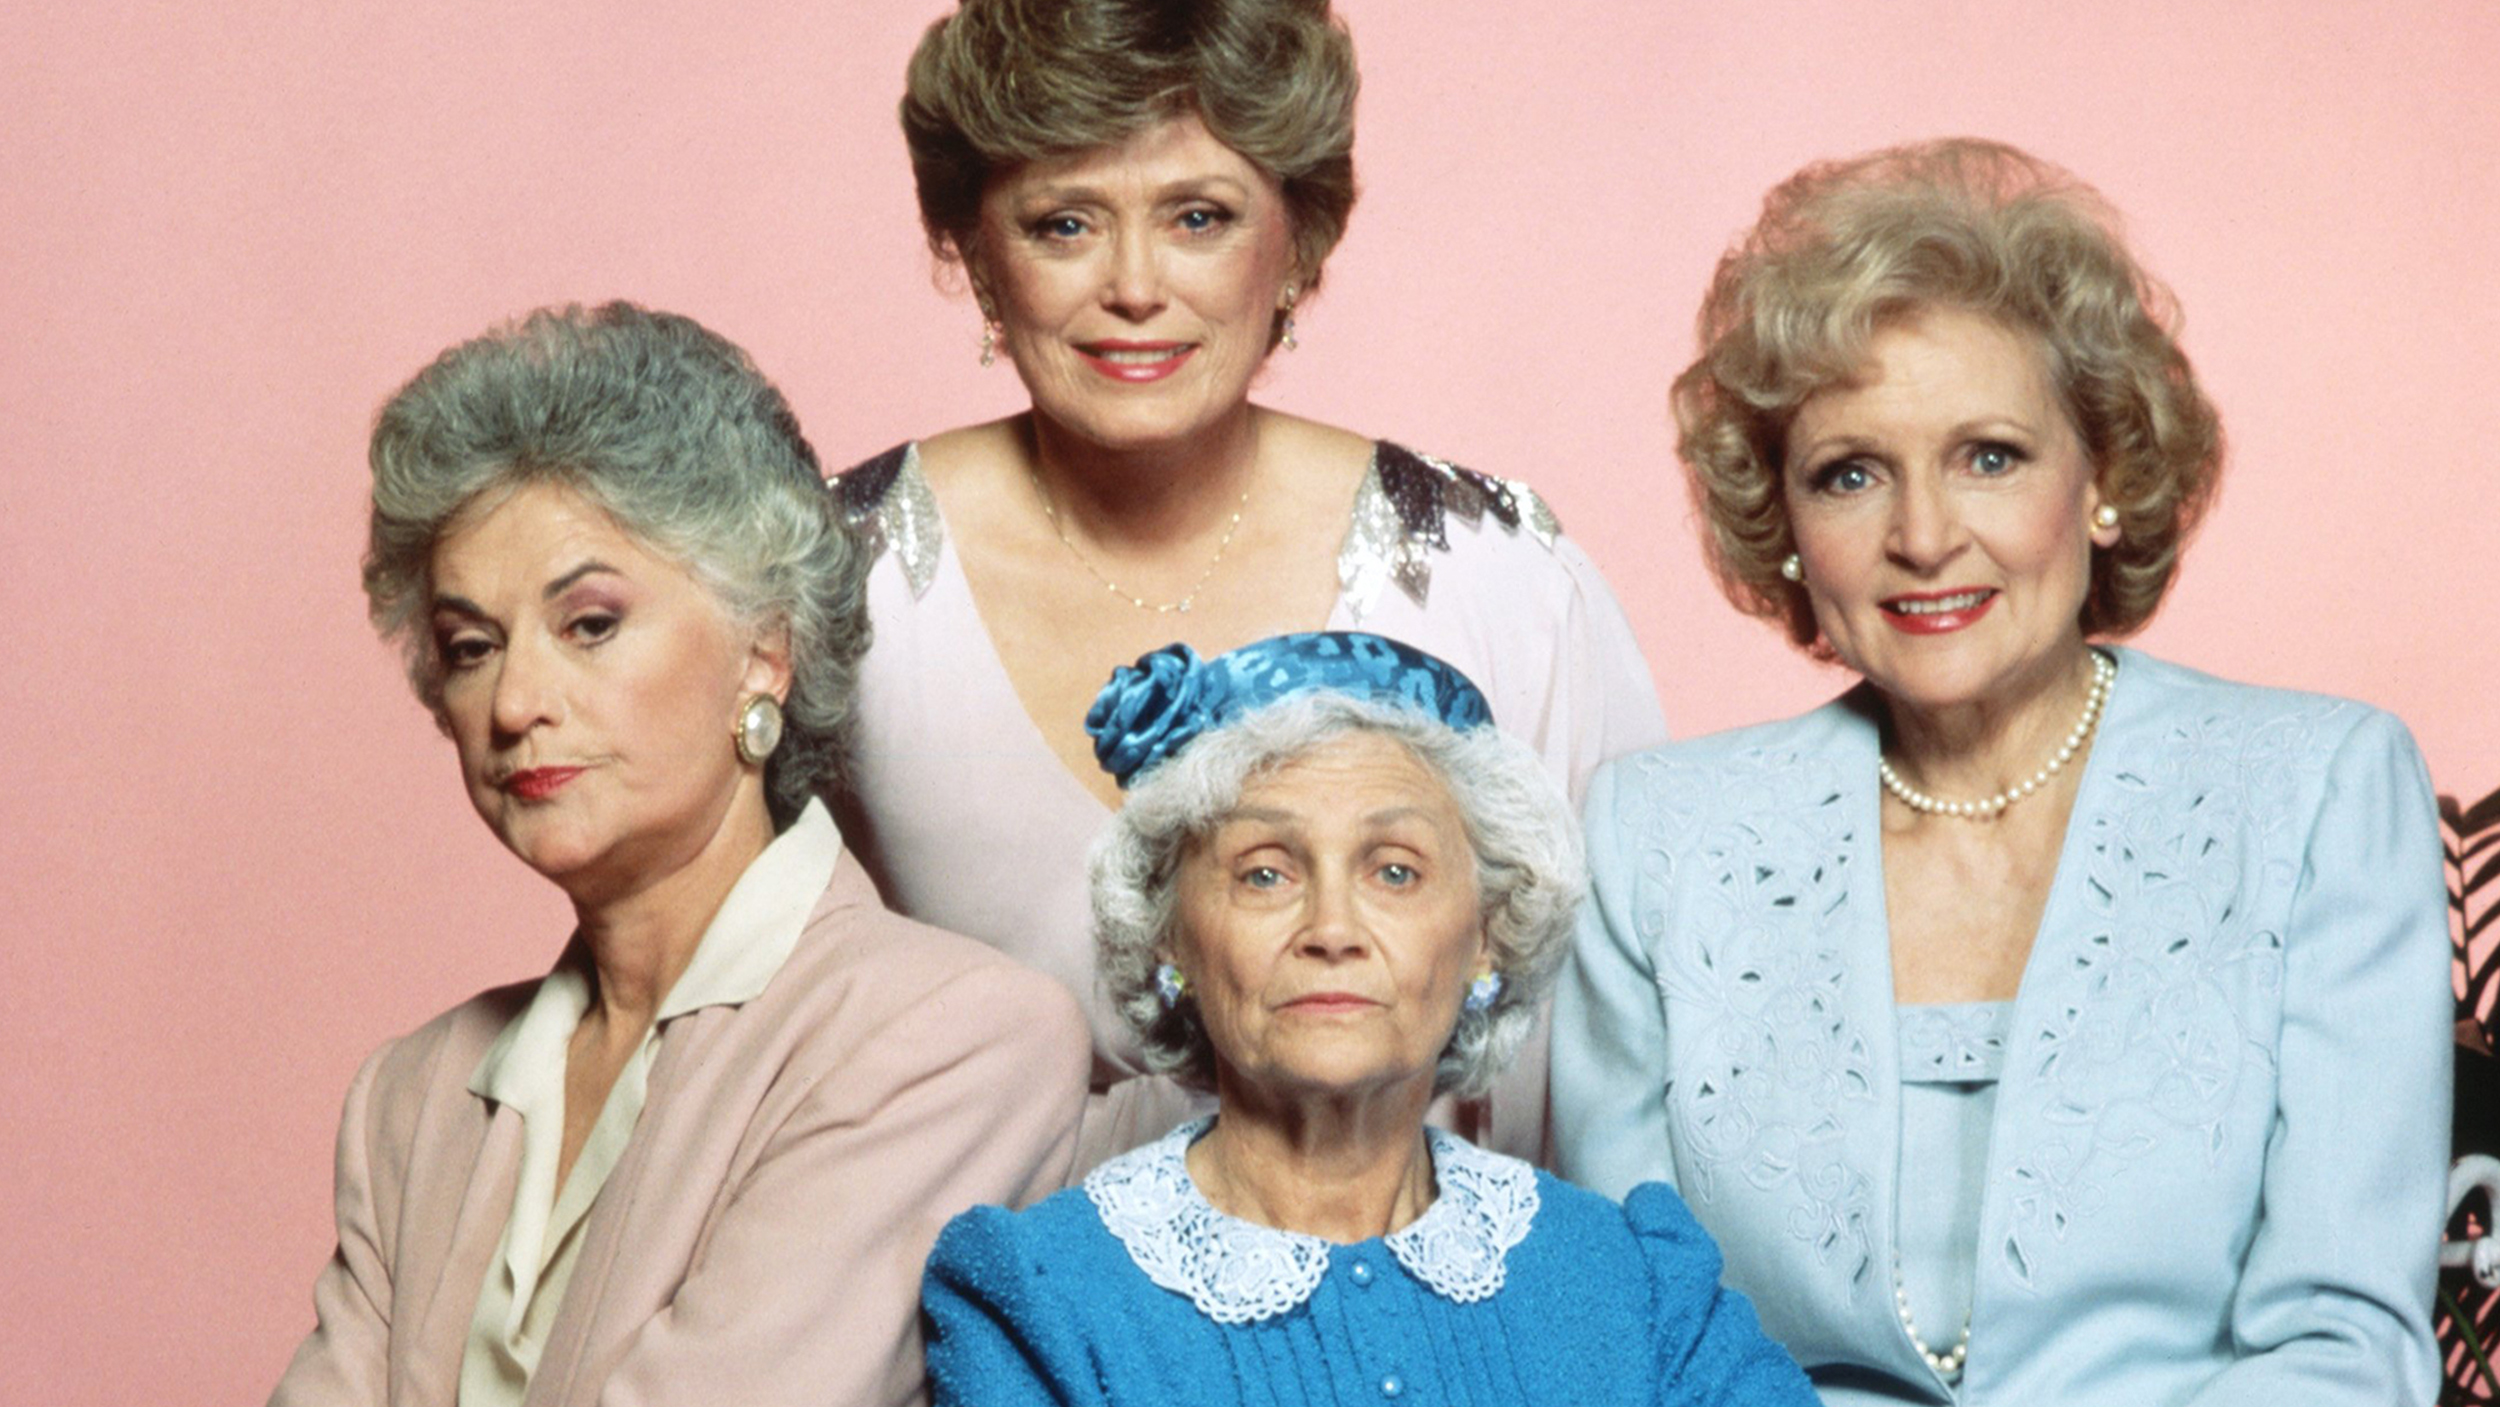 2 Year Old Girls Happy Birthday Wallpaper Thank You For Being A Fan Golden Girls Artist Debuts